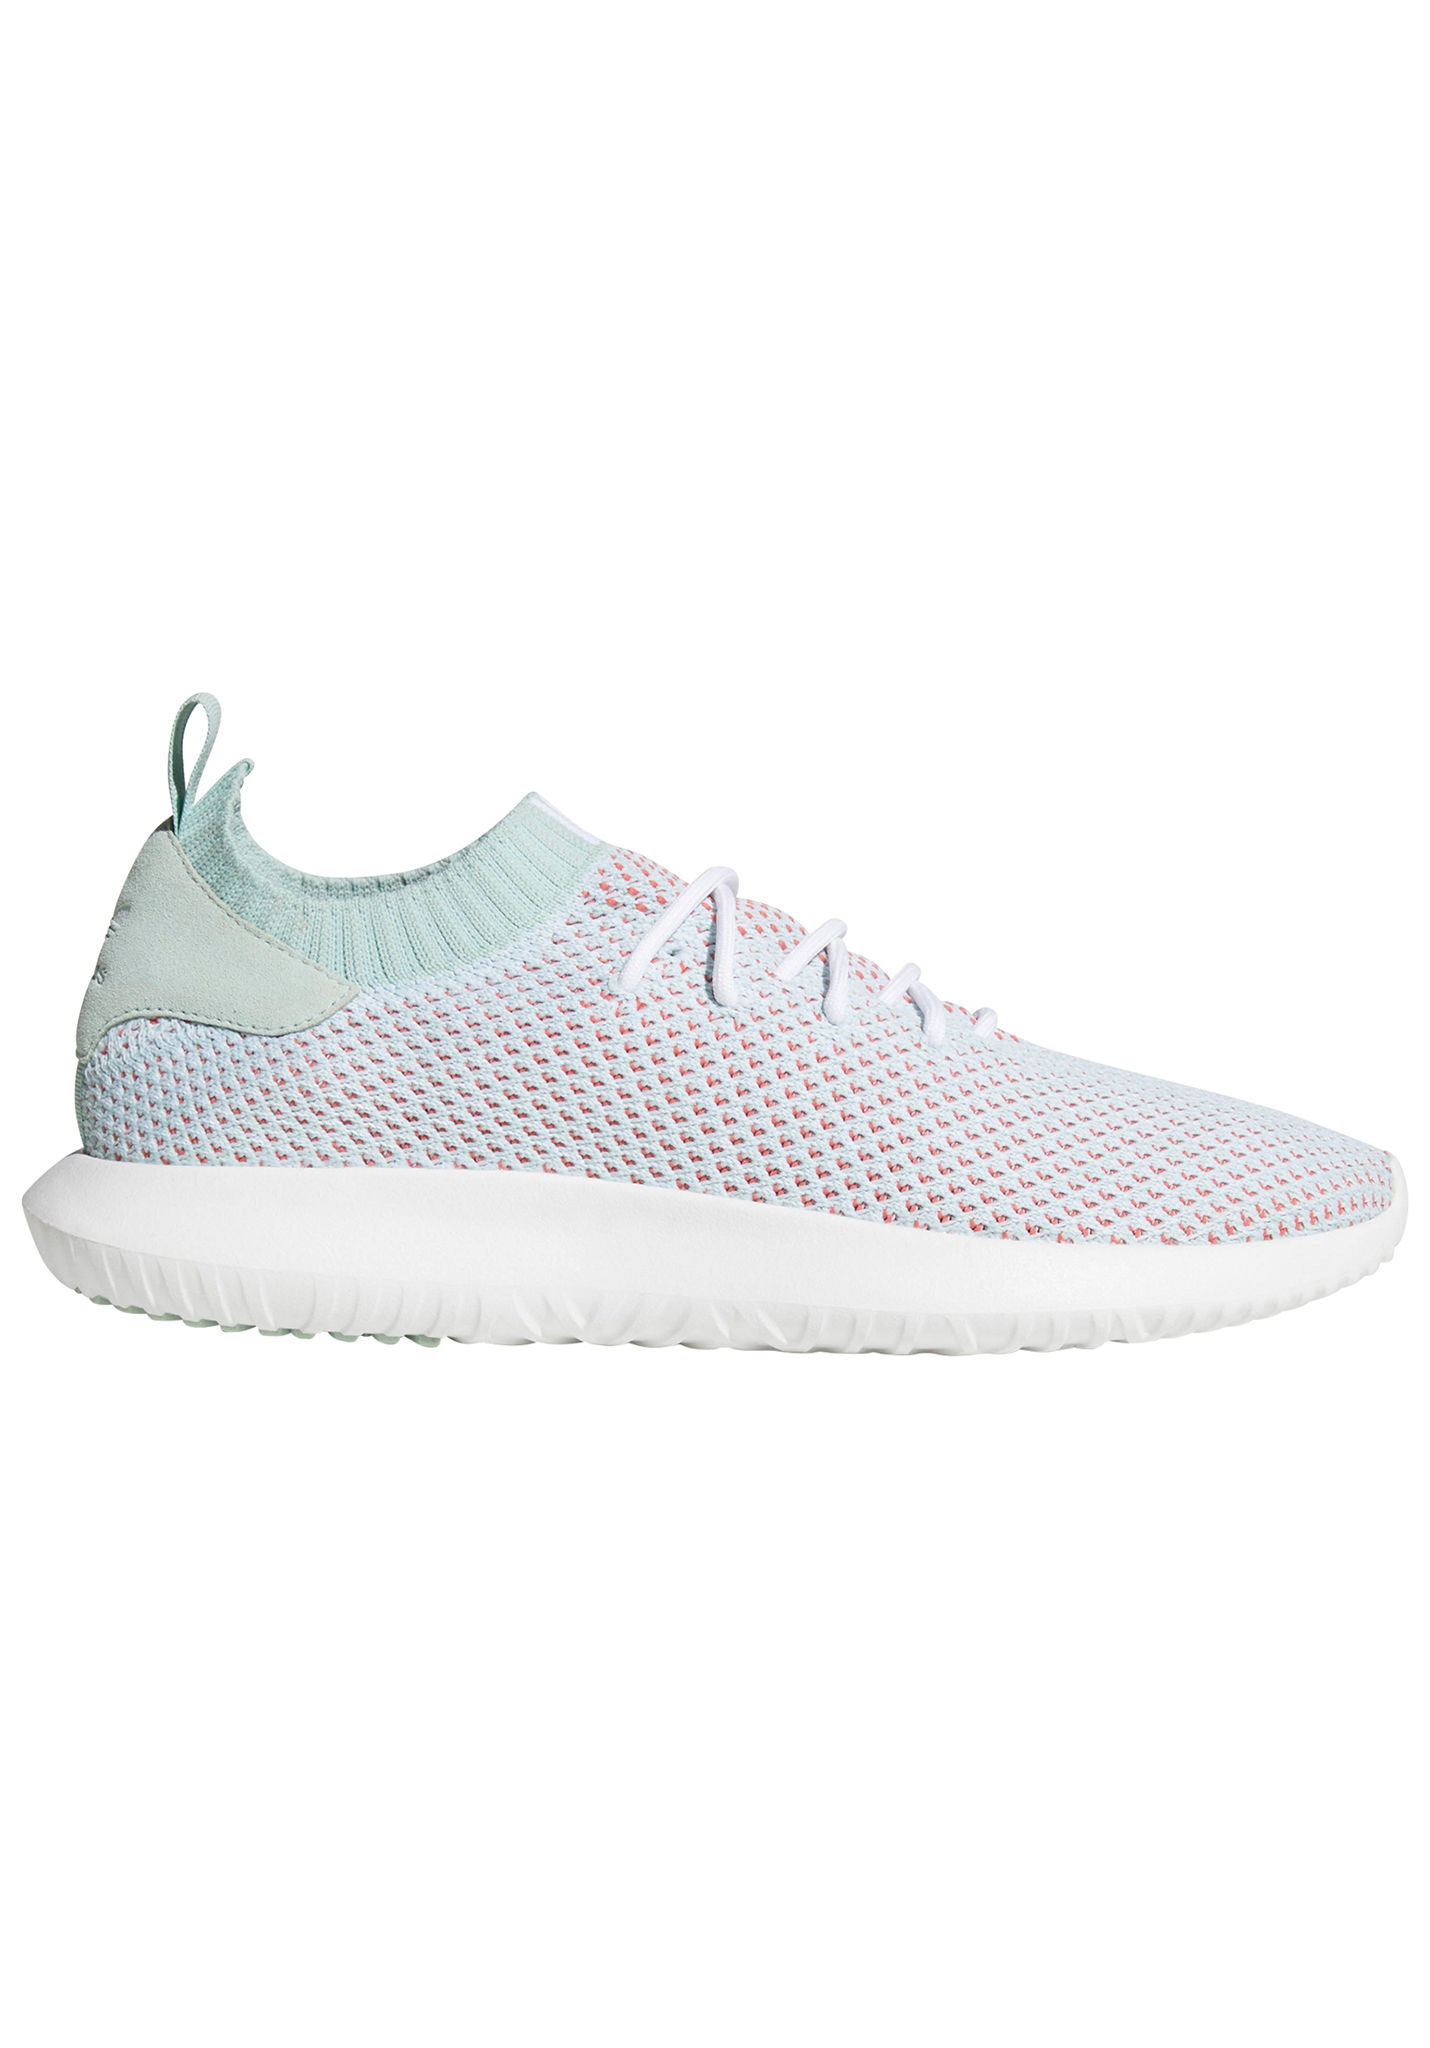 9f35d28f000 ADIDAS ORIGINALS Tubular Shadow Pk - Sneakers for Men - White - Planet  Sports